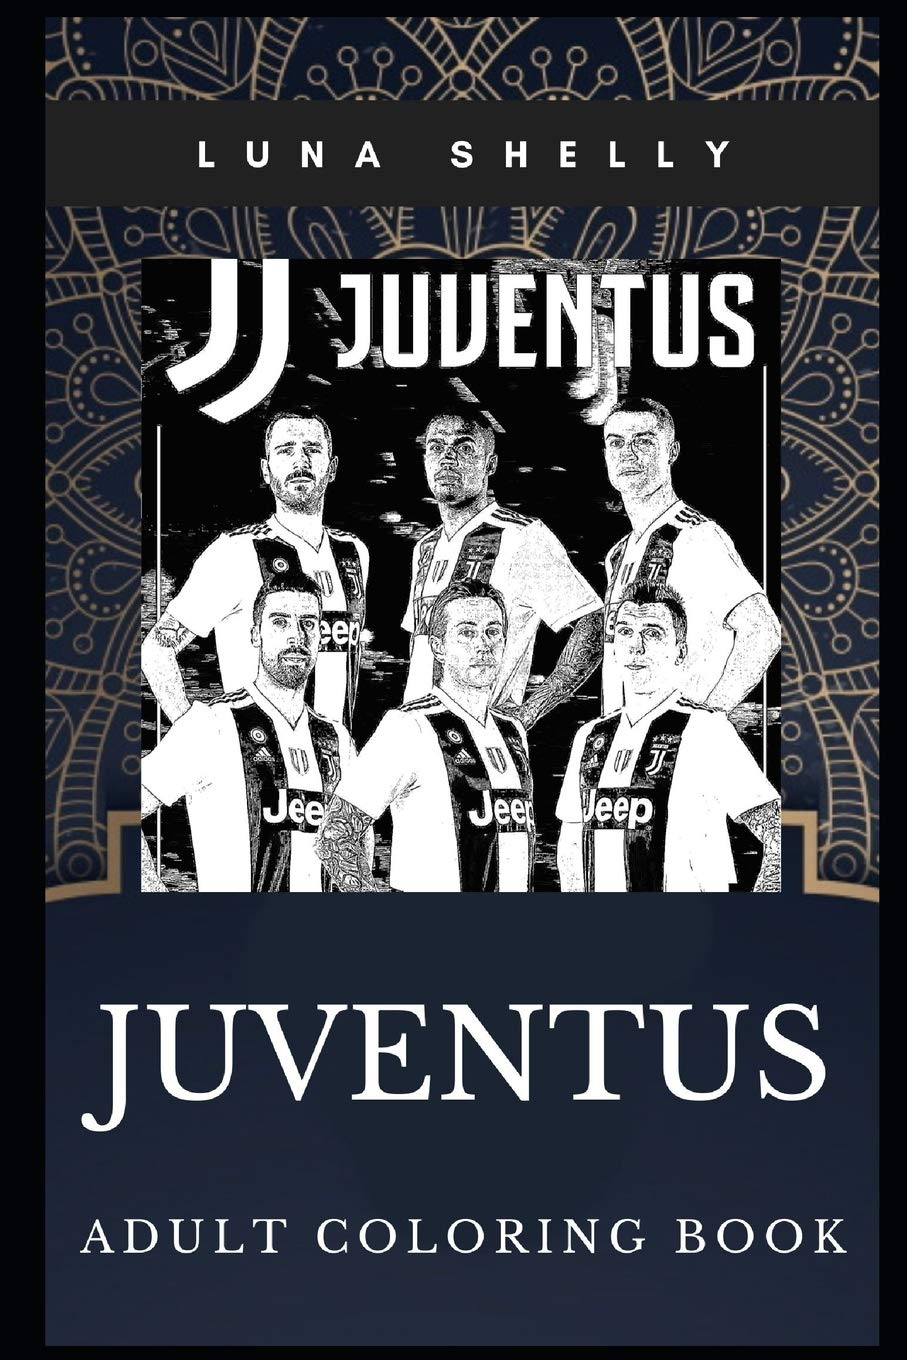 Juventus Adult Coloring Book Best Italian Football Club And Great Cristiano Ronaldo Inspired Coloring Book For Adults Juventus Books Shelly Luna 9781707943708 Amazon Com Books